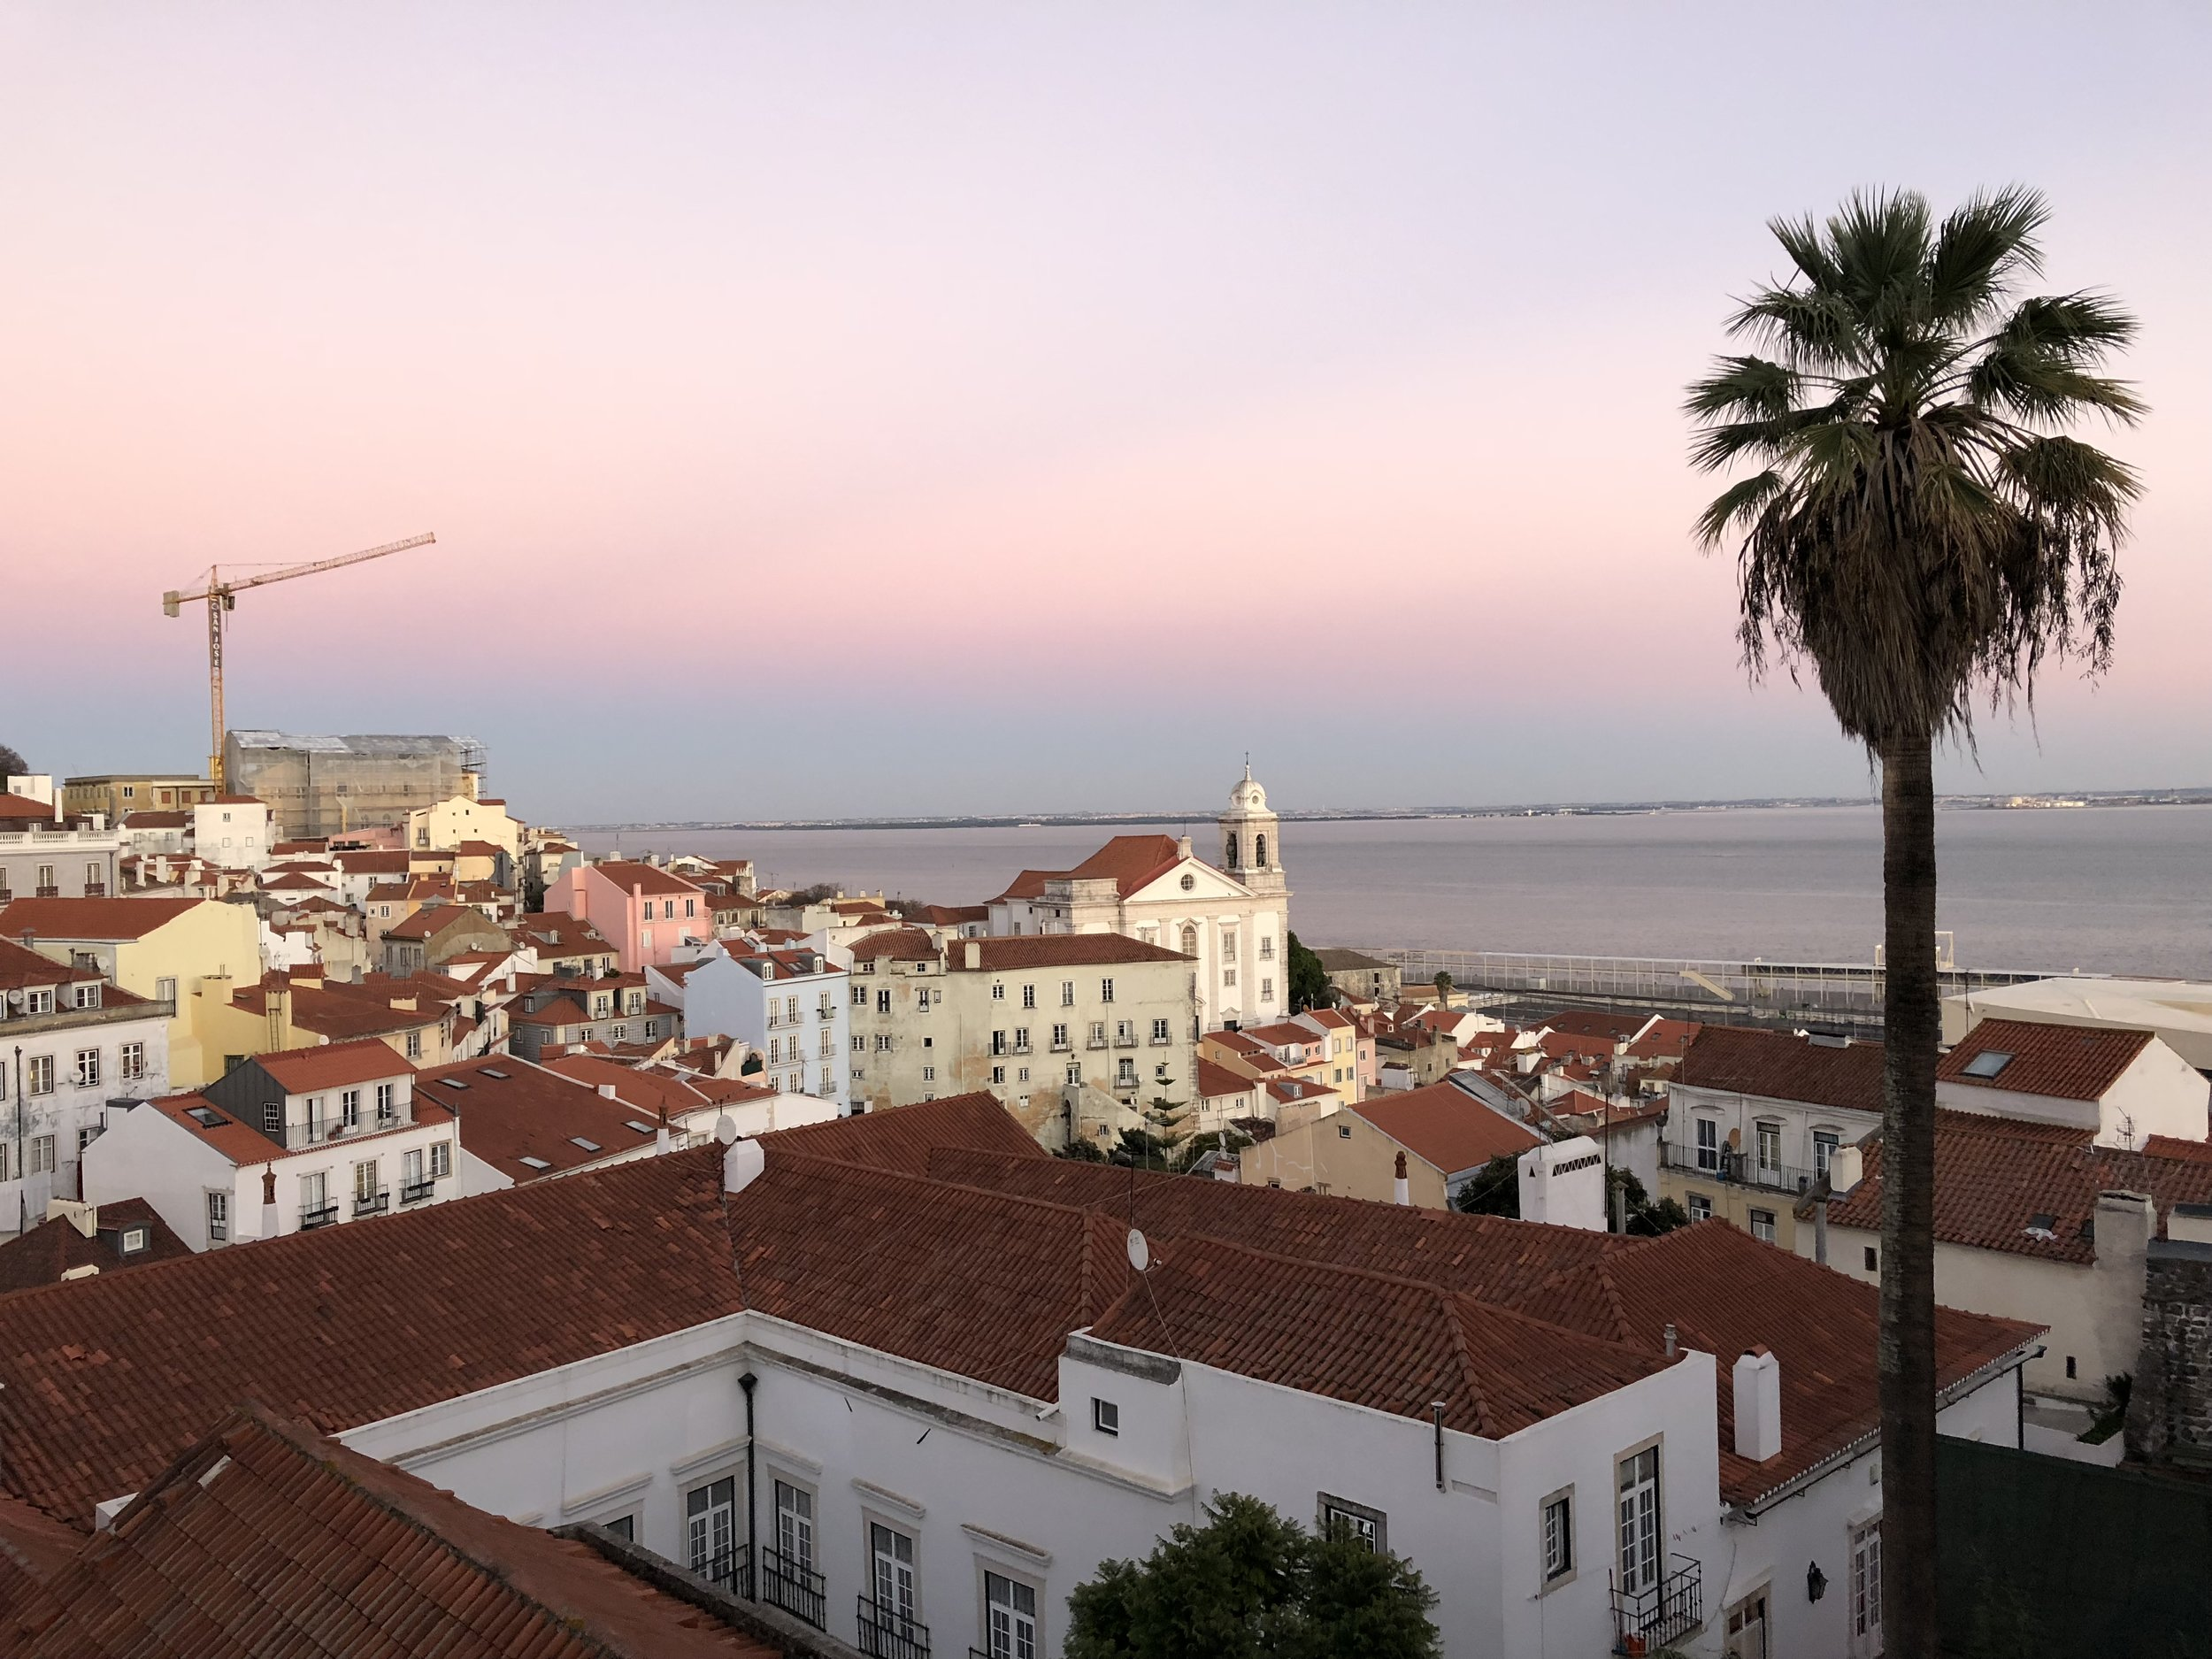 The sun beginning to set on the Tagas River in Lisbon.